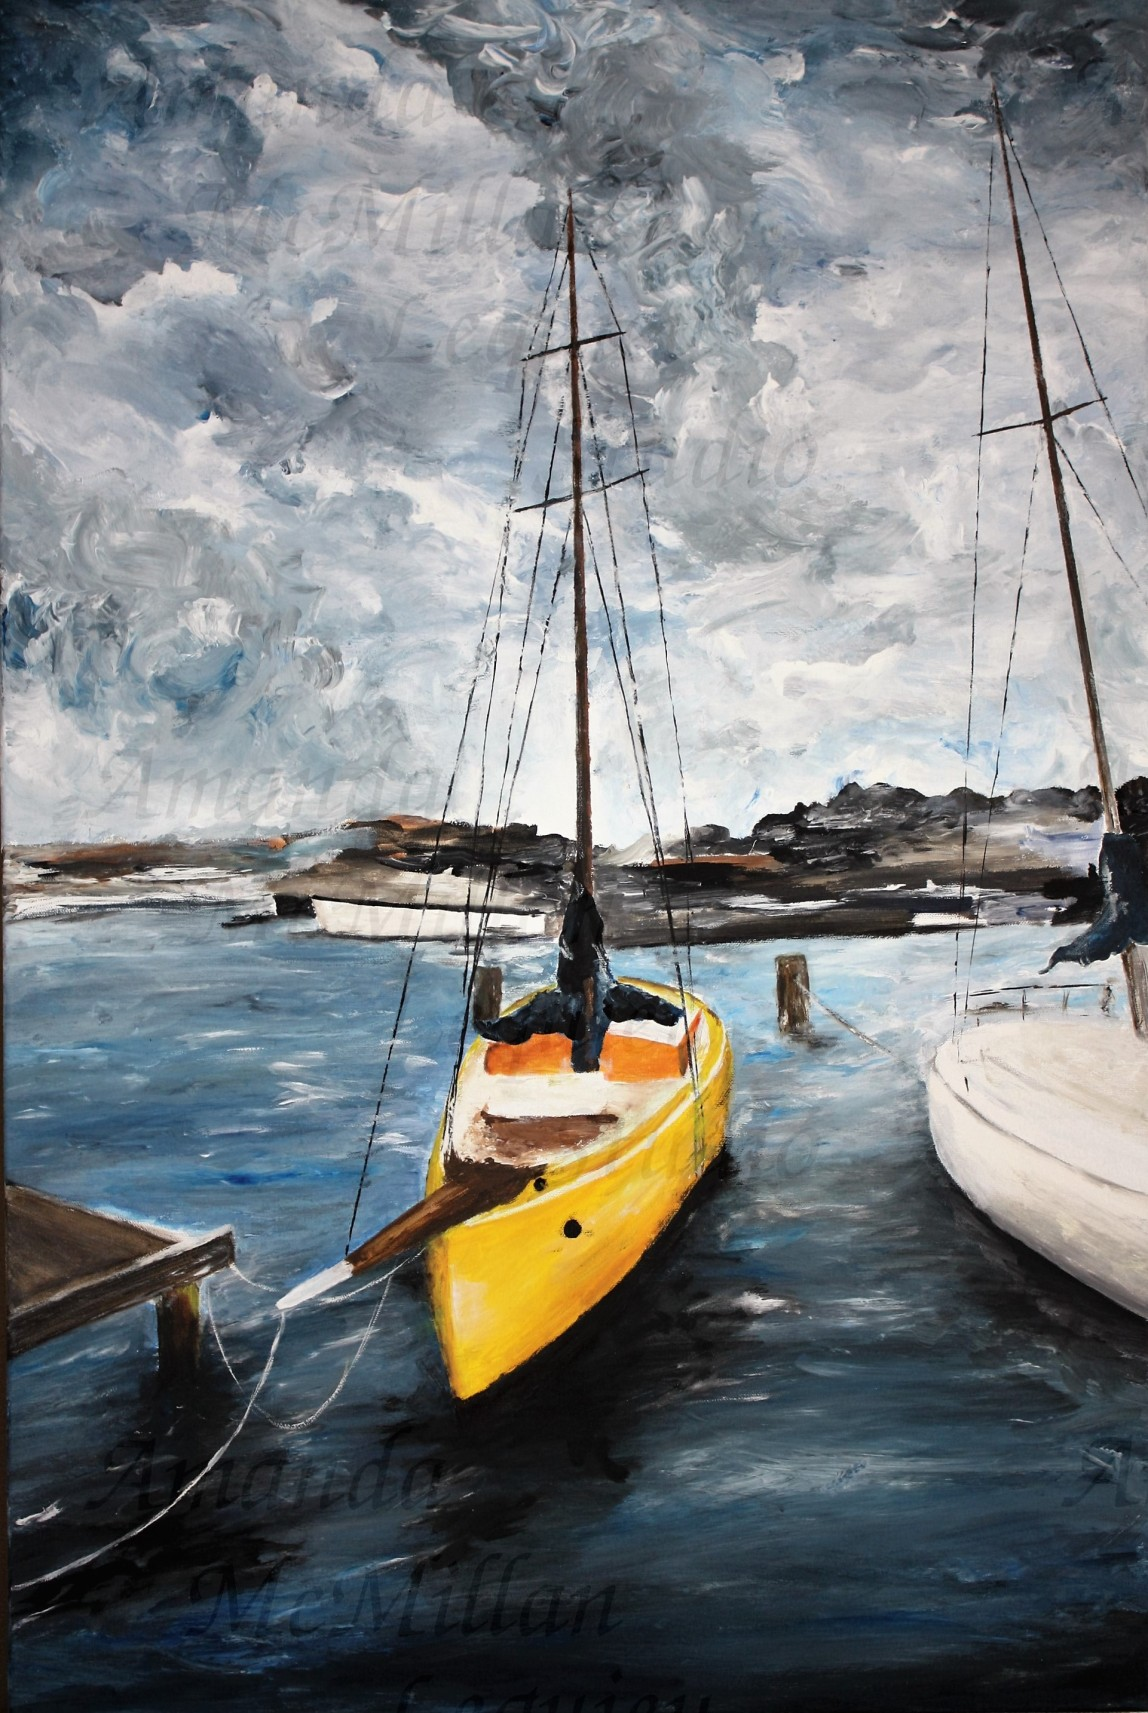 """Safe harbor"": Original acrylic on stretched canvas, 36x24 inches; $300"